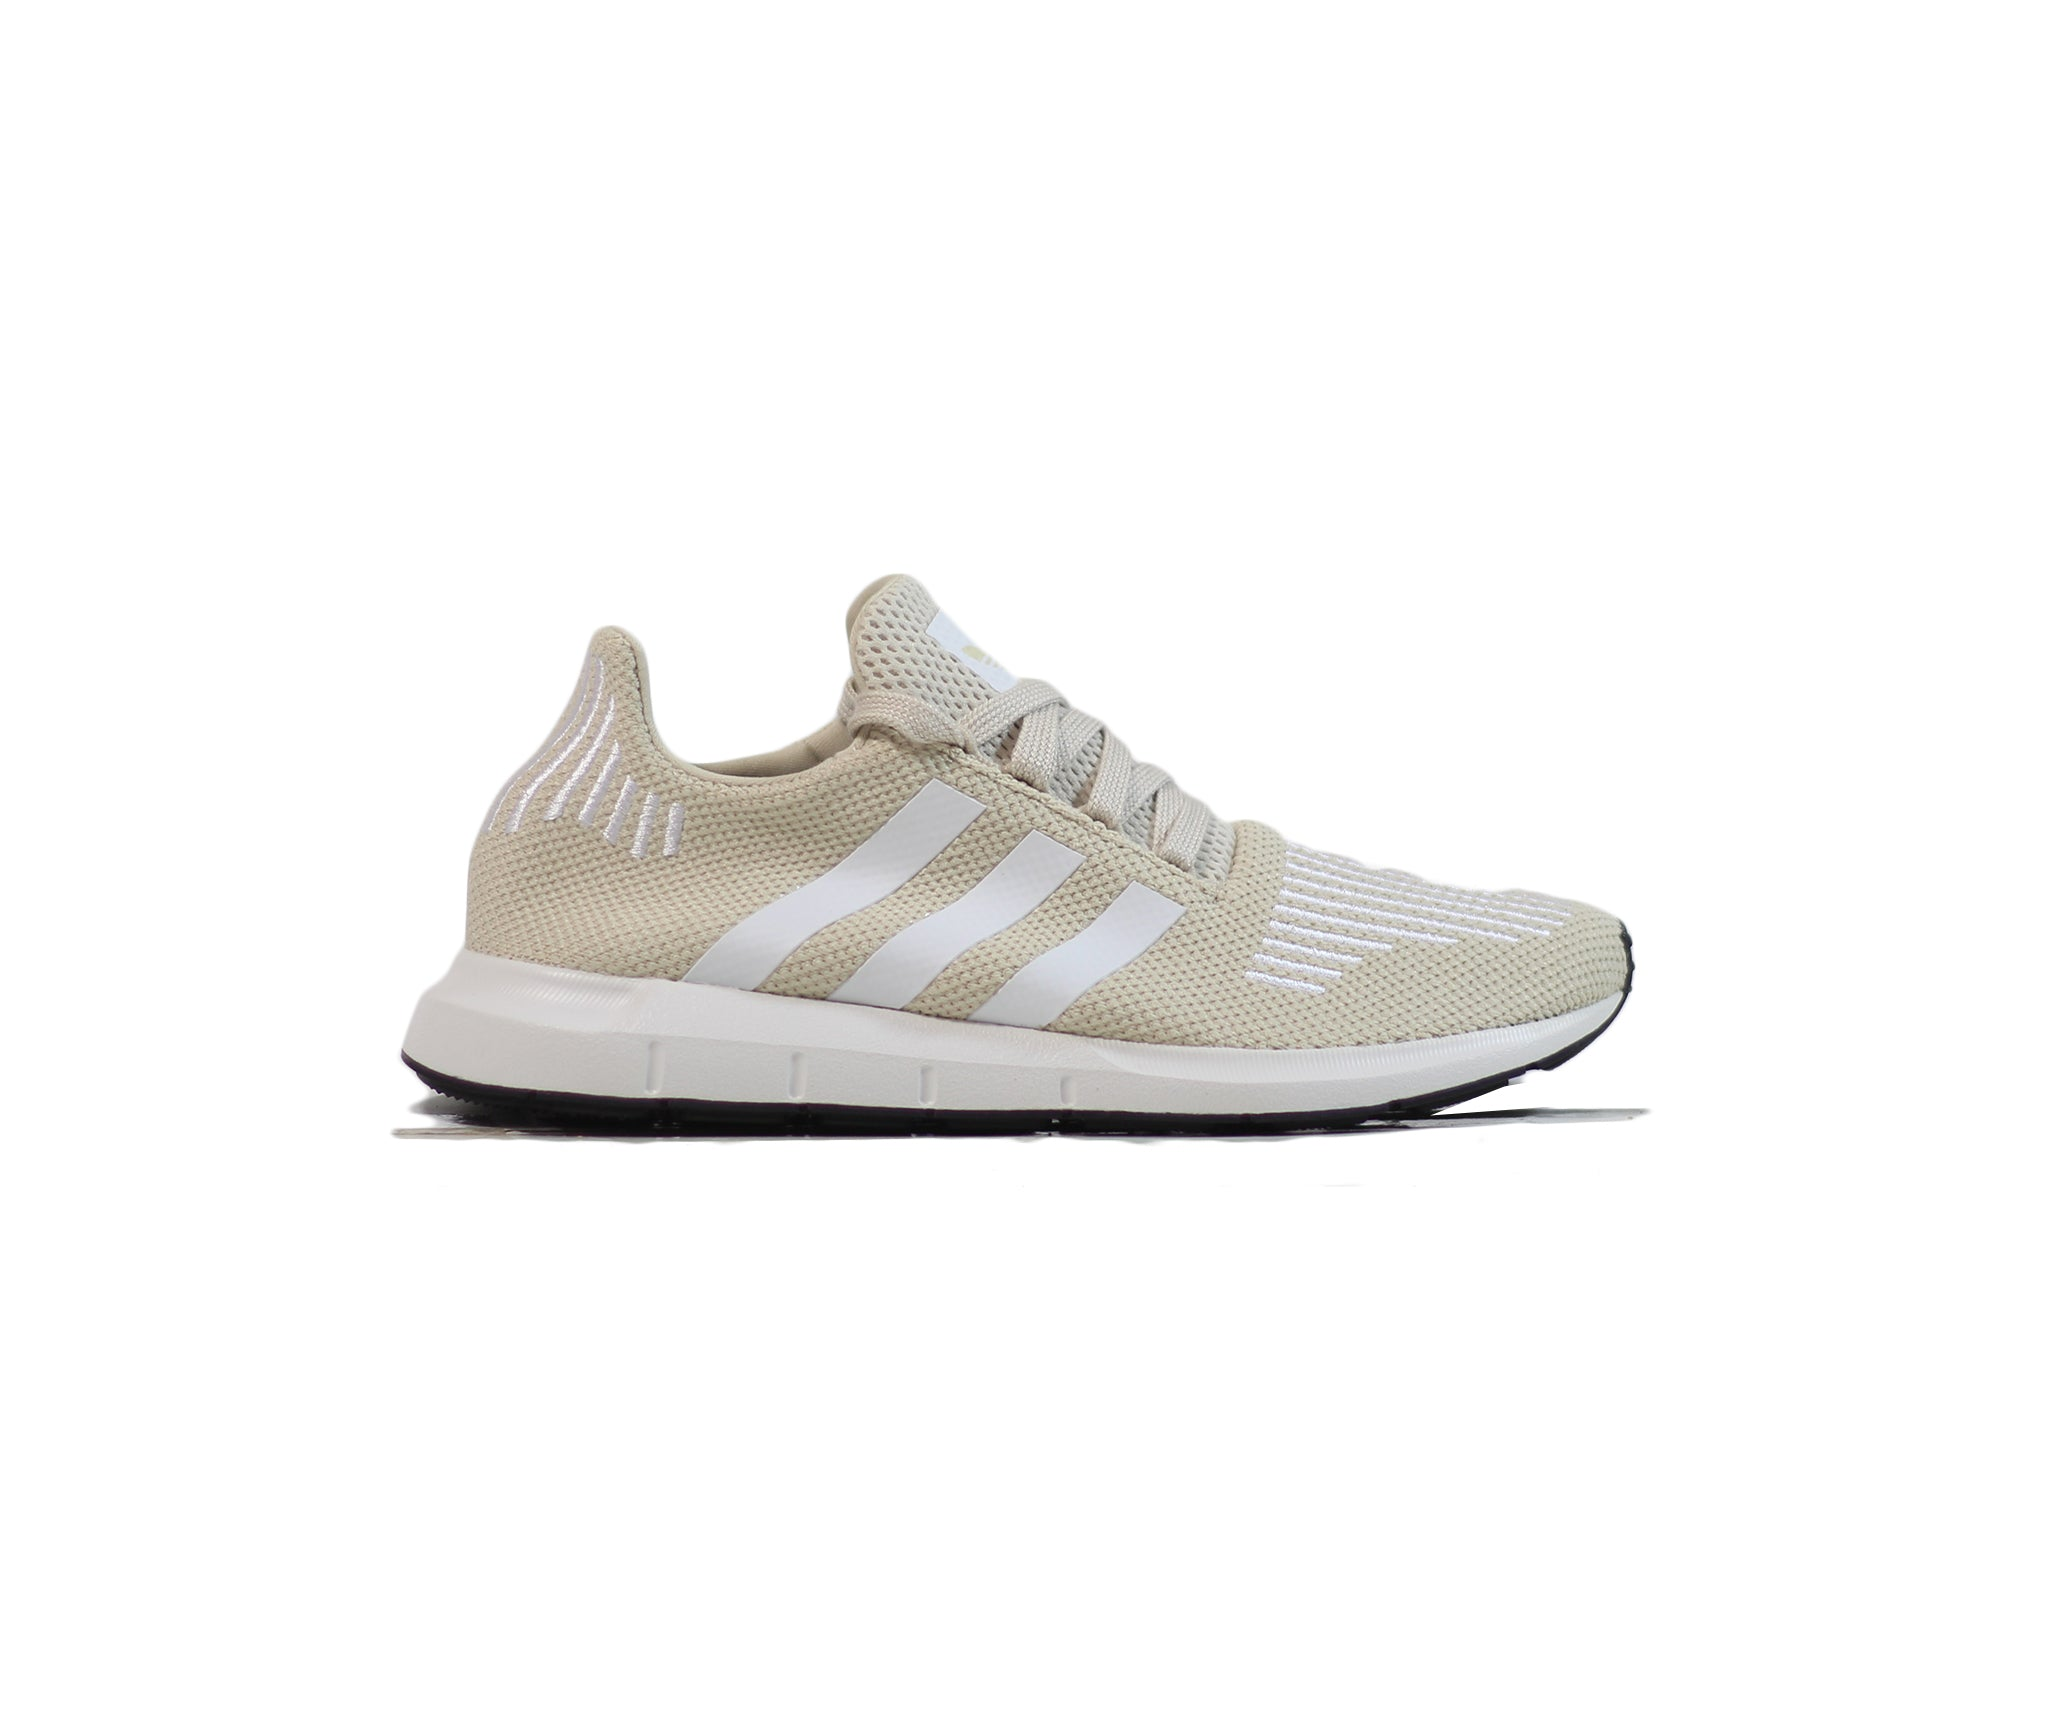 7160af615 Adidas Women s Swift Run - Beige – History of New York Powered by ...